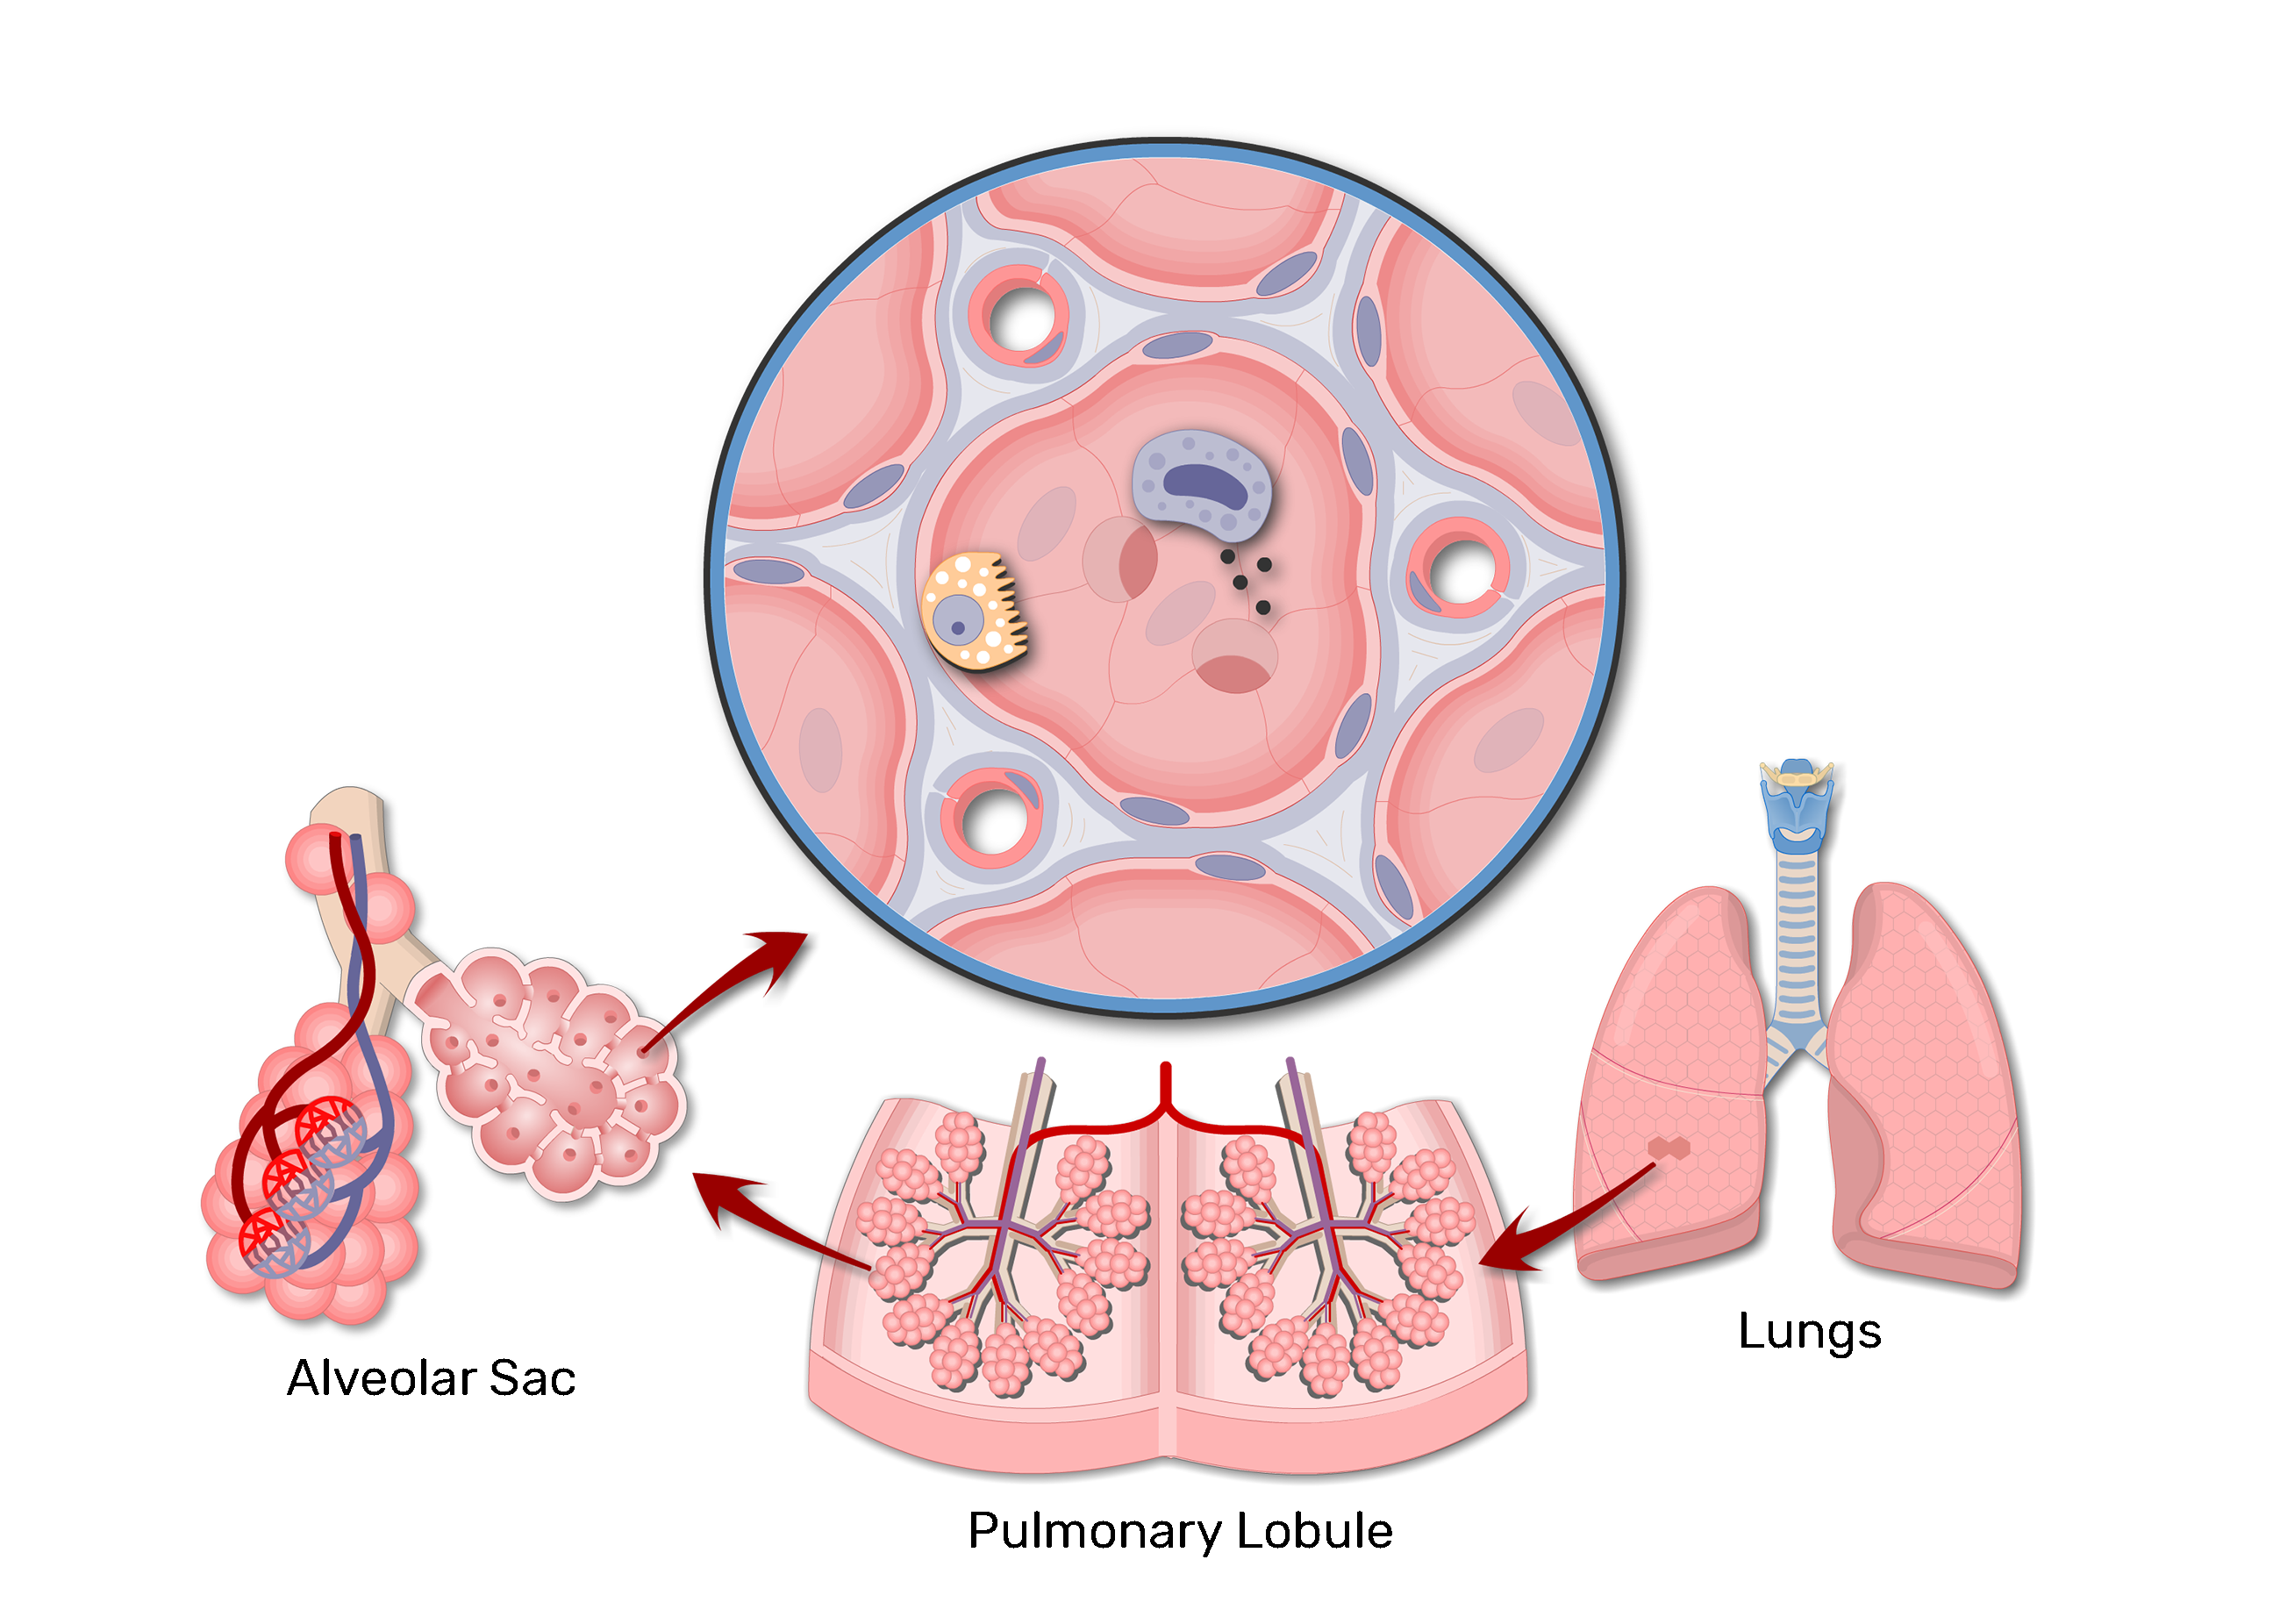 Lung Alveolus Structure Lung Alveoli Anatomy